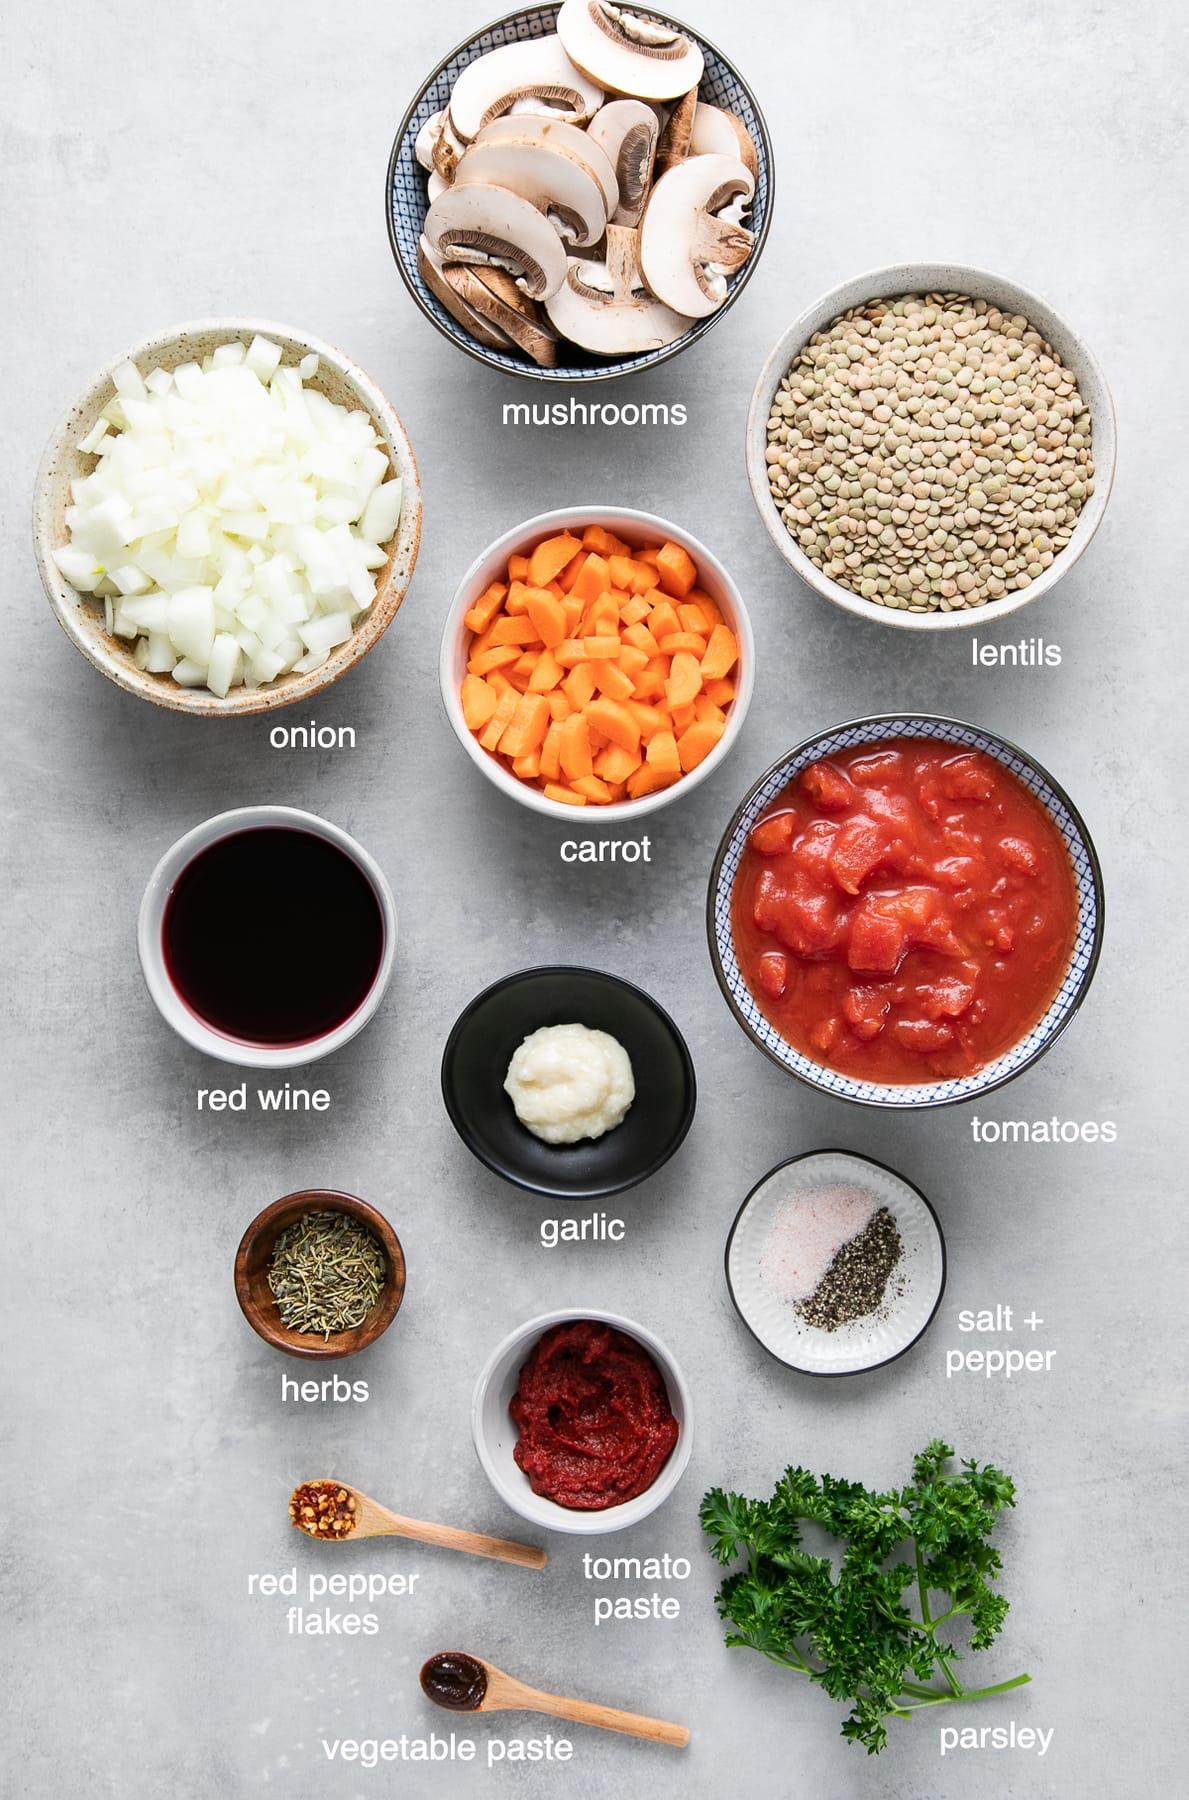 top down view of ingredients used to make mushroom and lentil ragu.